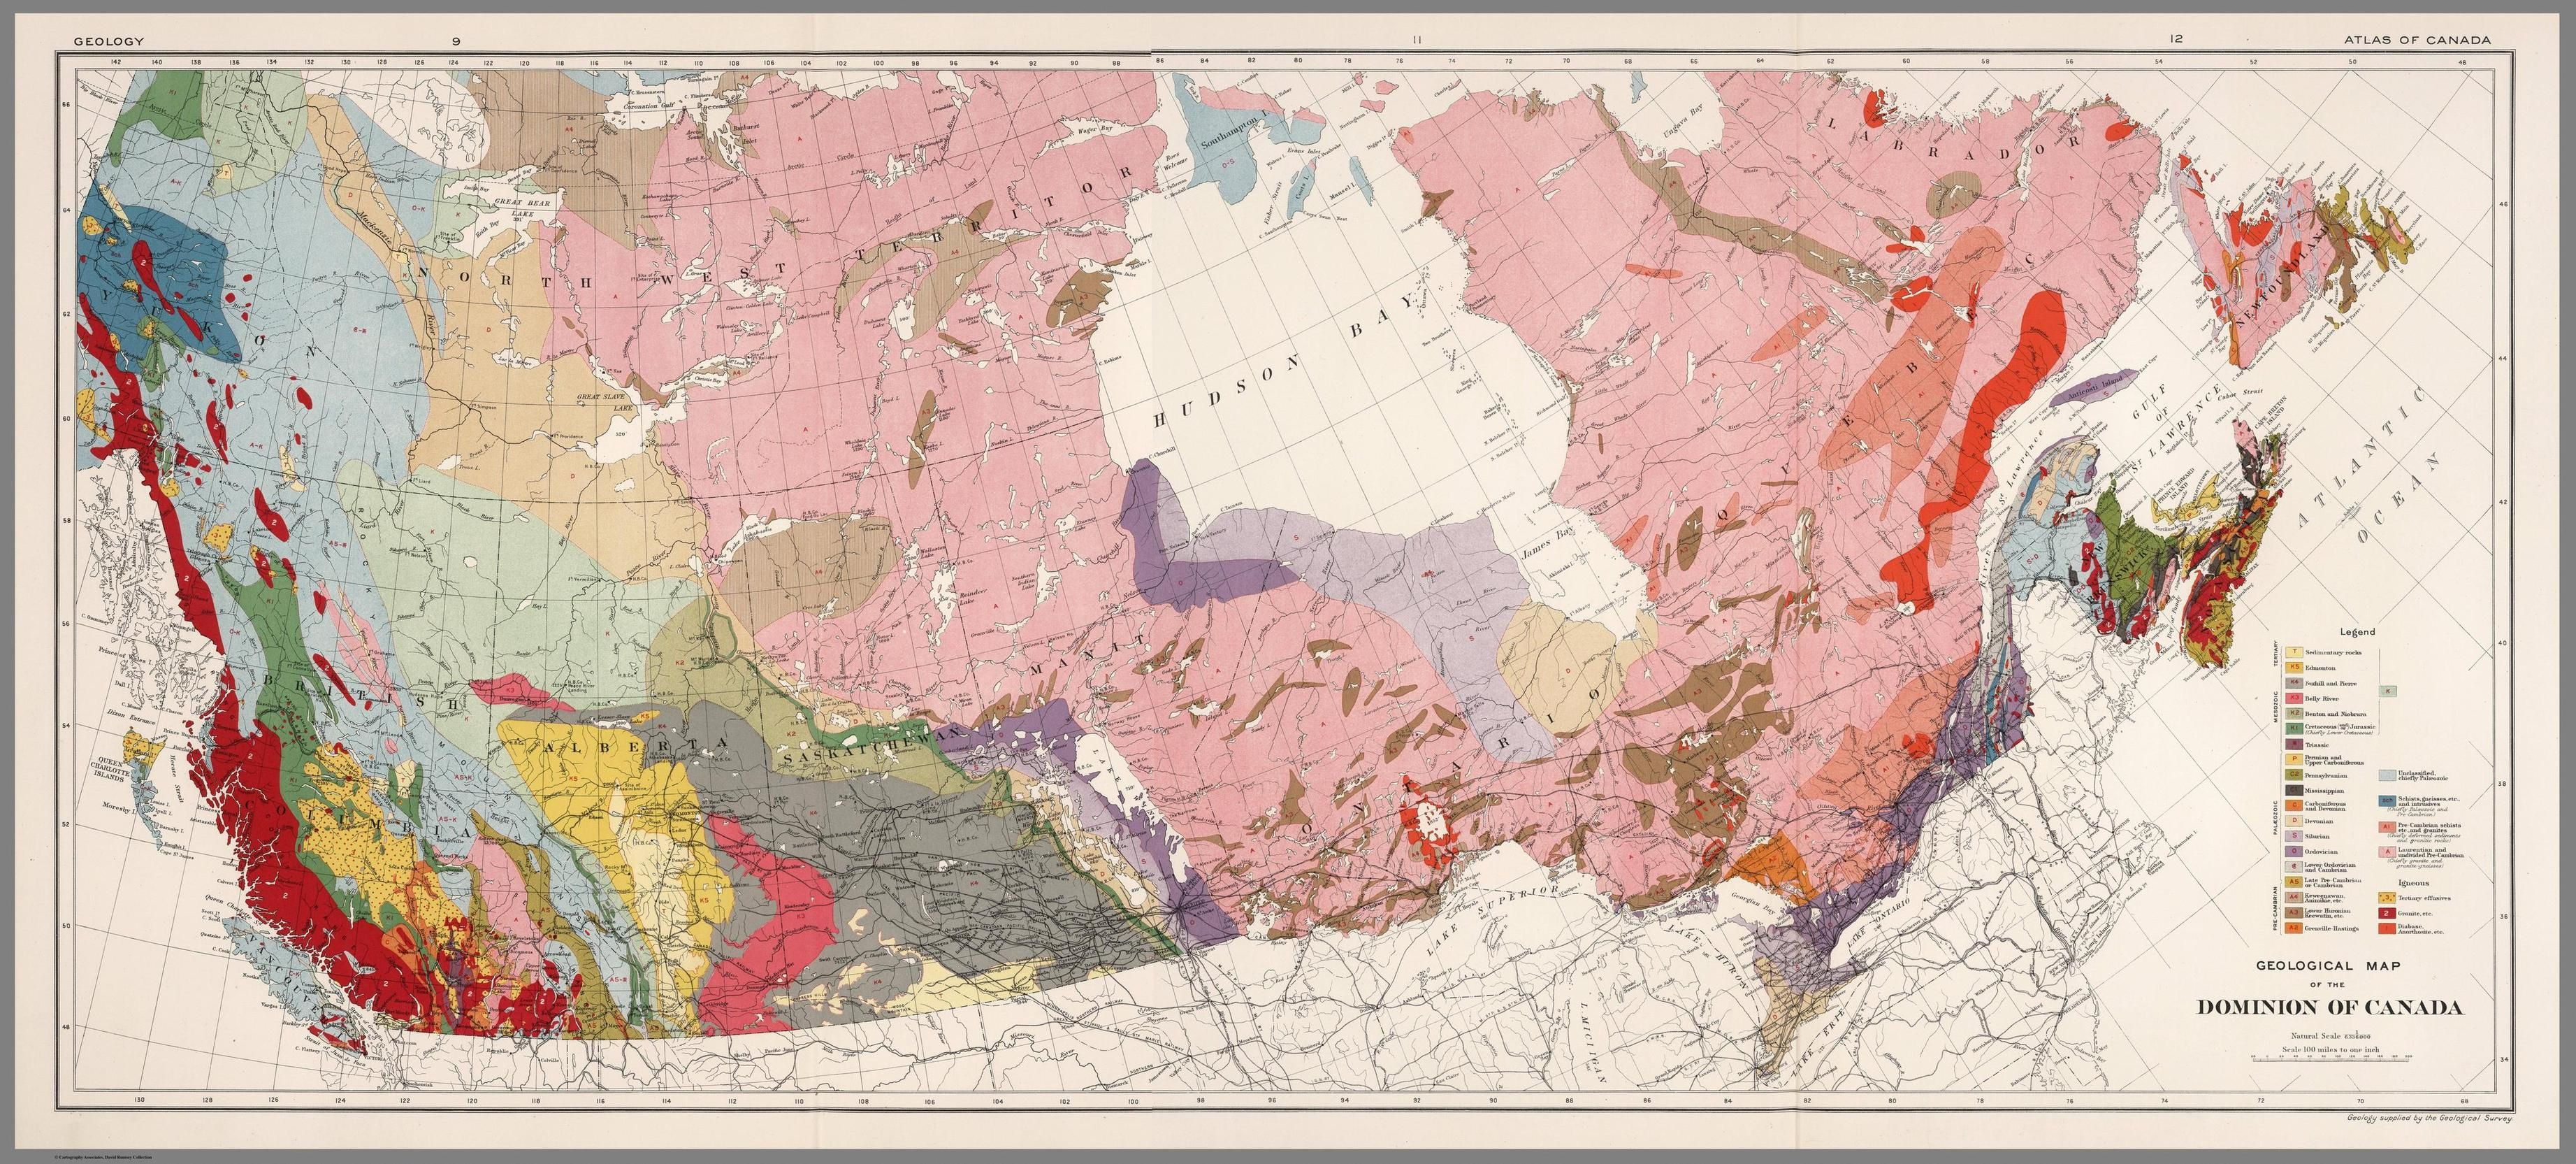 geology dominion of canada 1915 by chalifour map canada geology